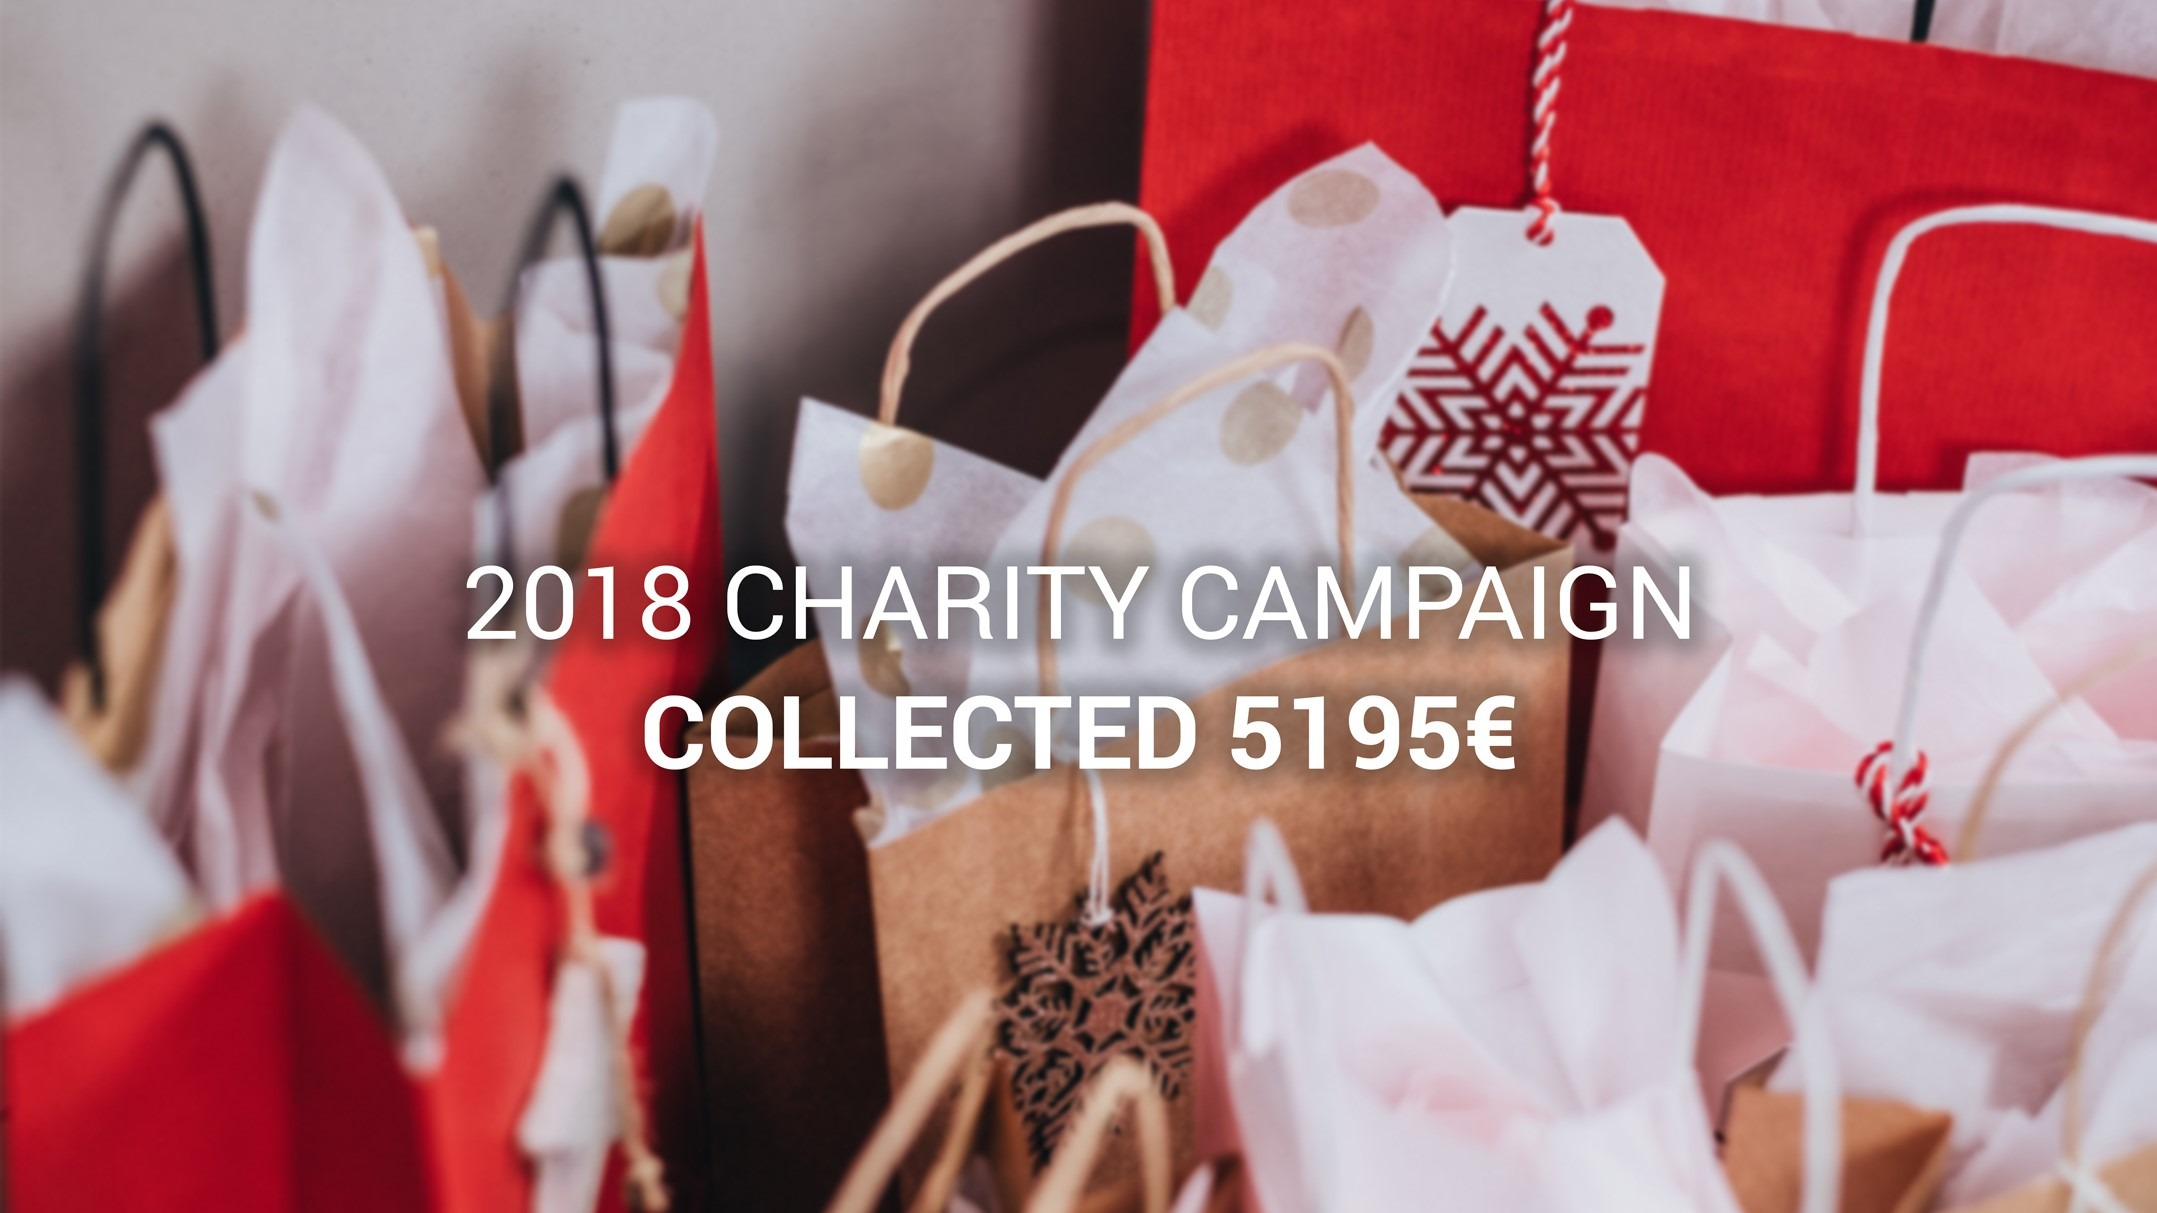 EstateGuru's 2018 festive charity drive was a huge success